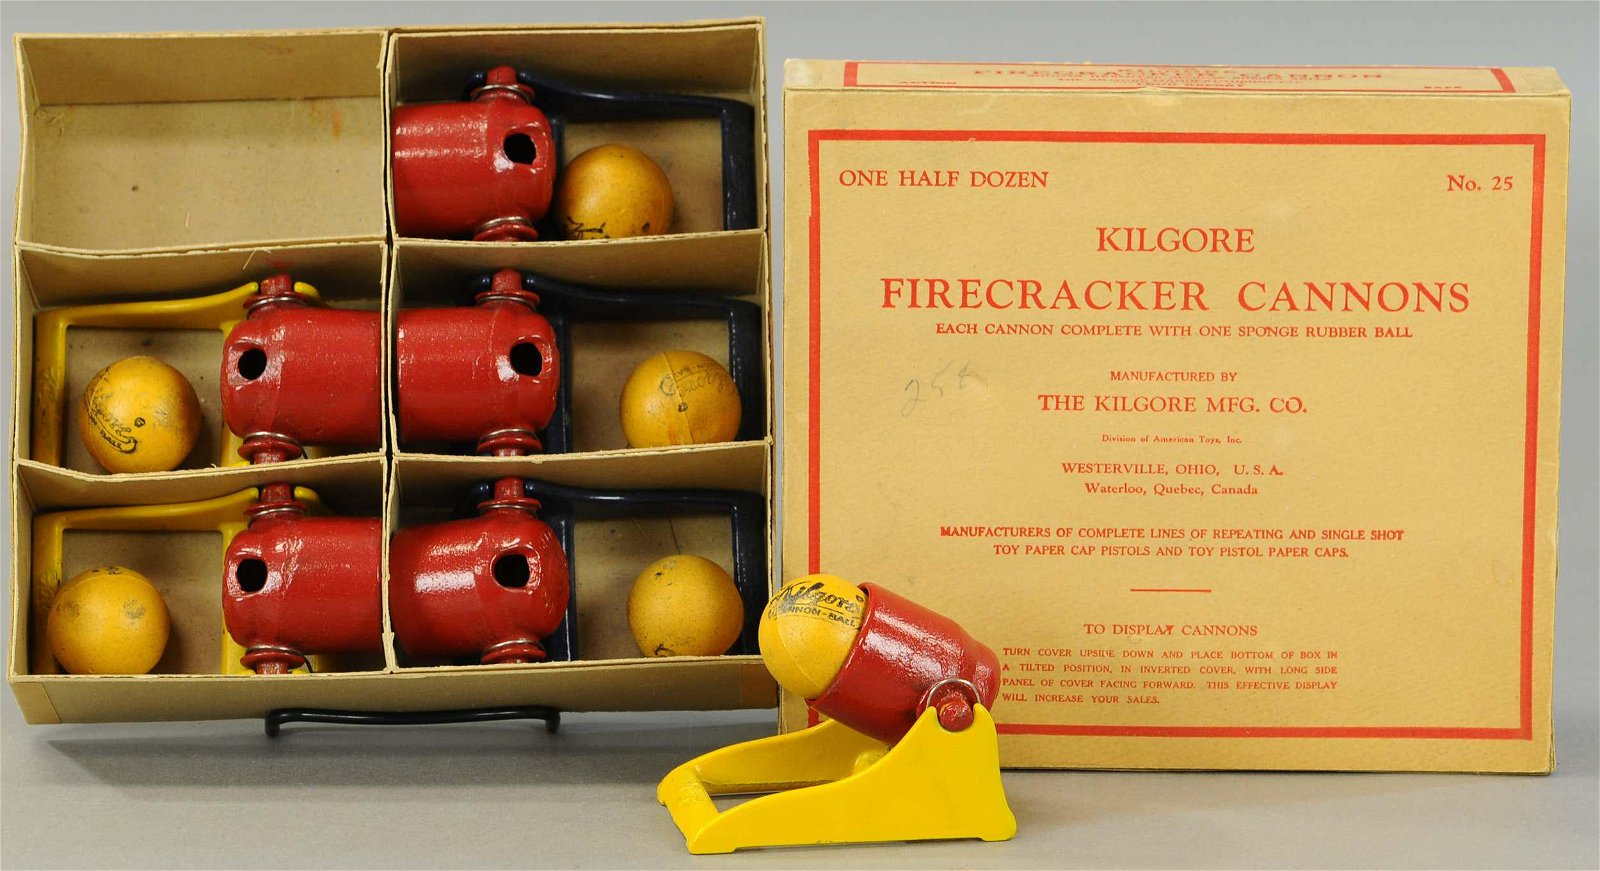 BOXED KILGORE FIRECRACKER CANNONS SET